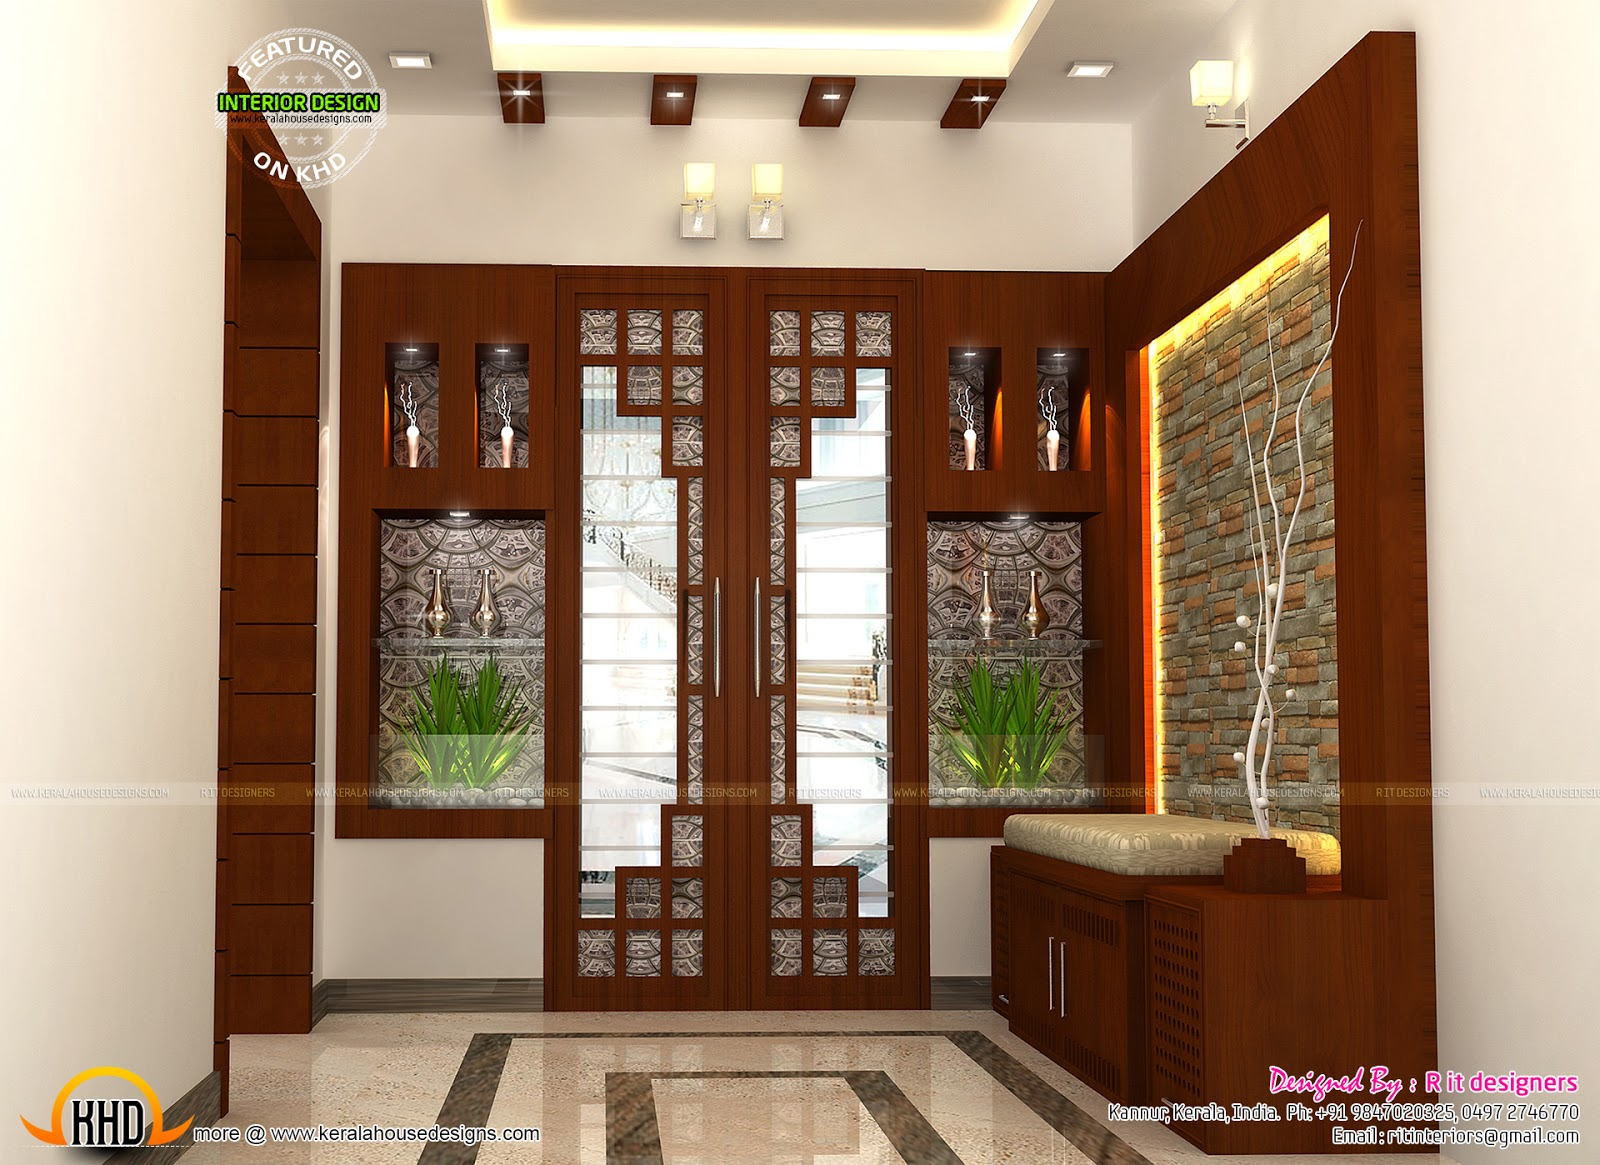 Interior decors by r it designers kerala home design and floor plans - Interior design homes ...